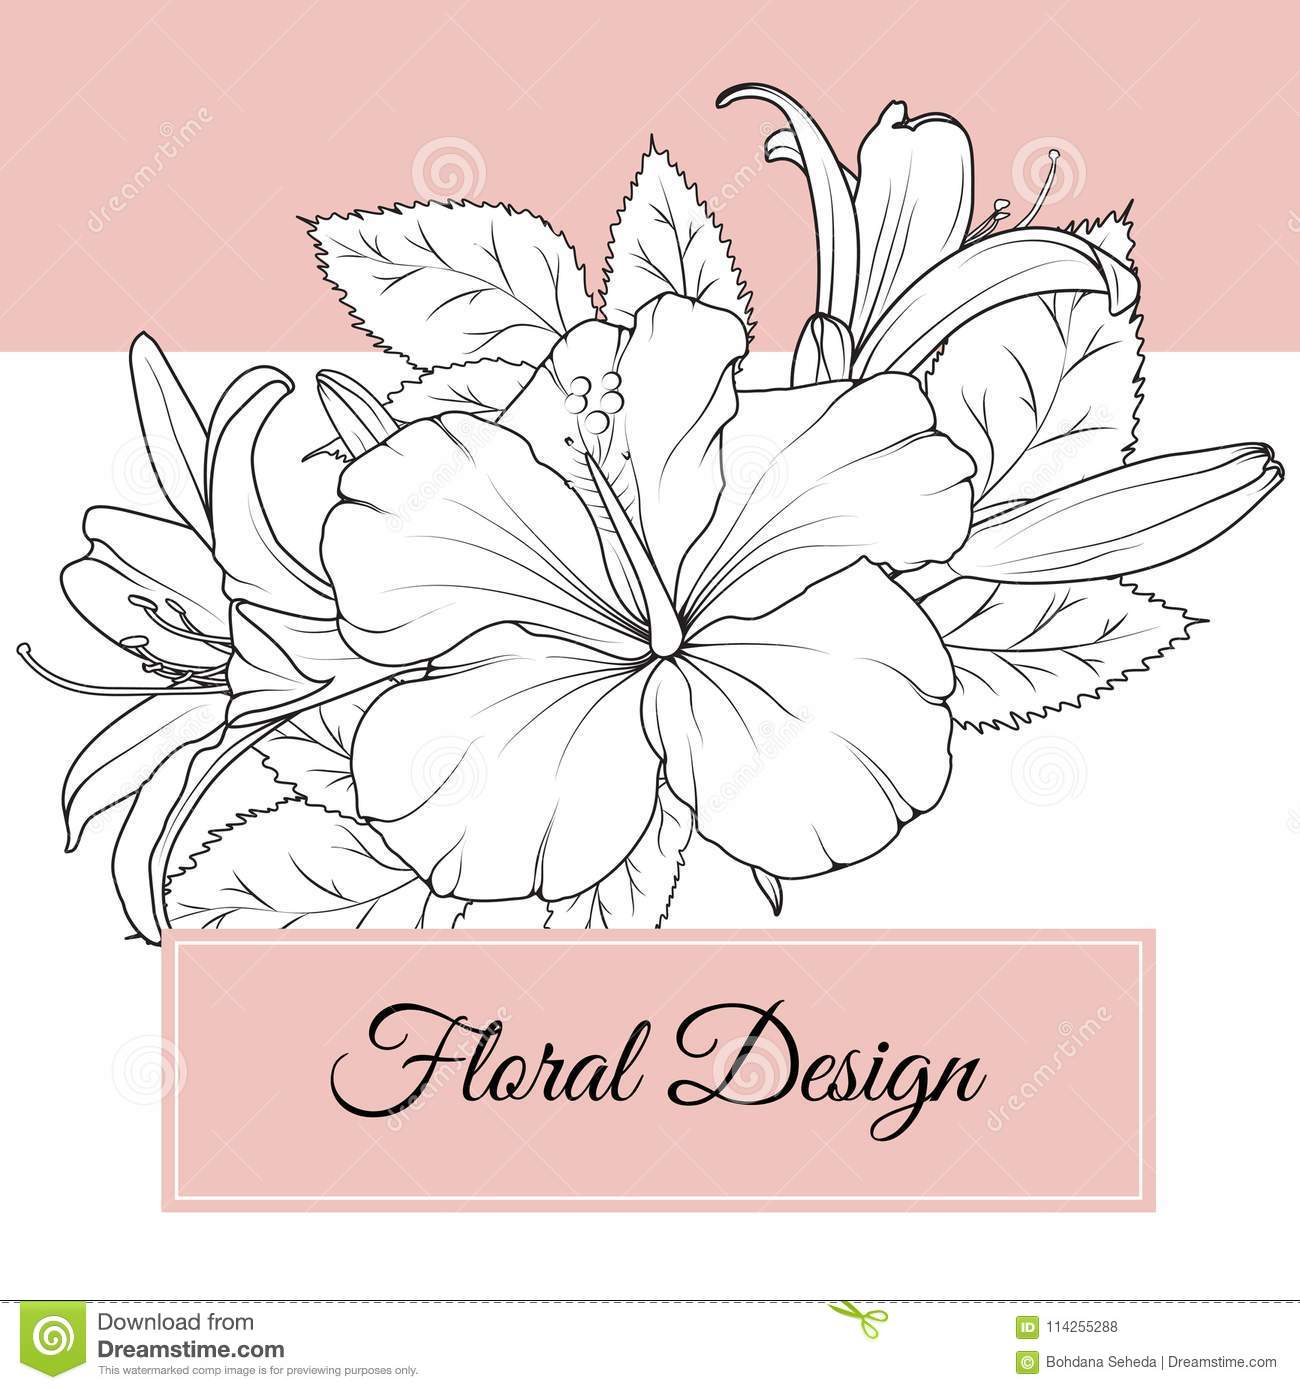 Hibiscus Lily Flowers Floral Design Card Template Stock Vector Illustration Of Isolated Floral 114255288